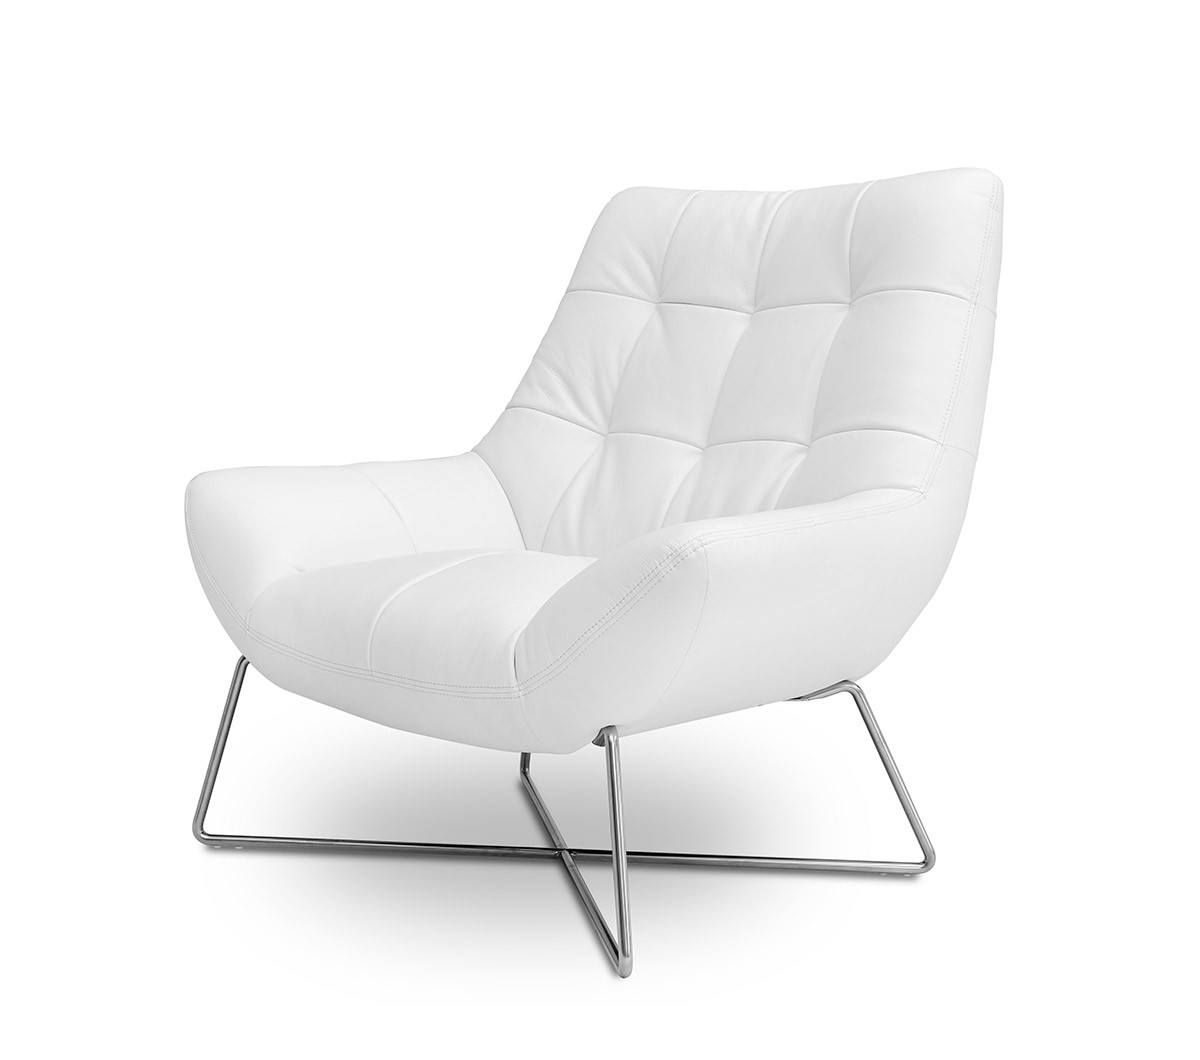 casa istra  modern white occasional chair - divani casa istra  modern white occasional chair